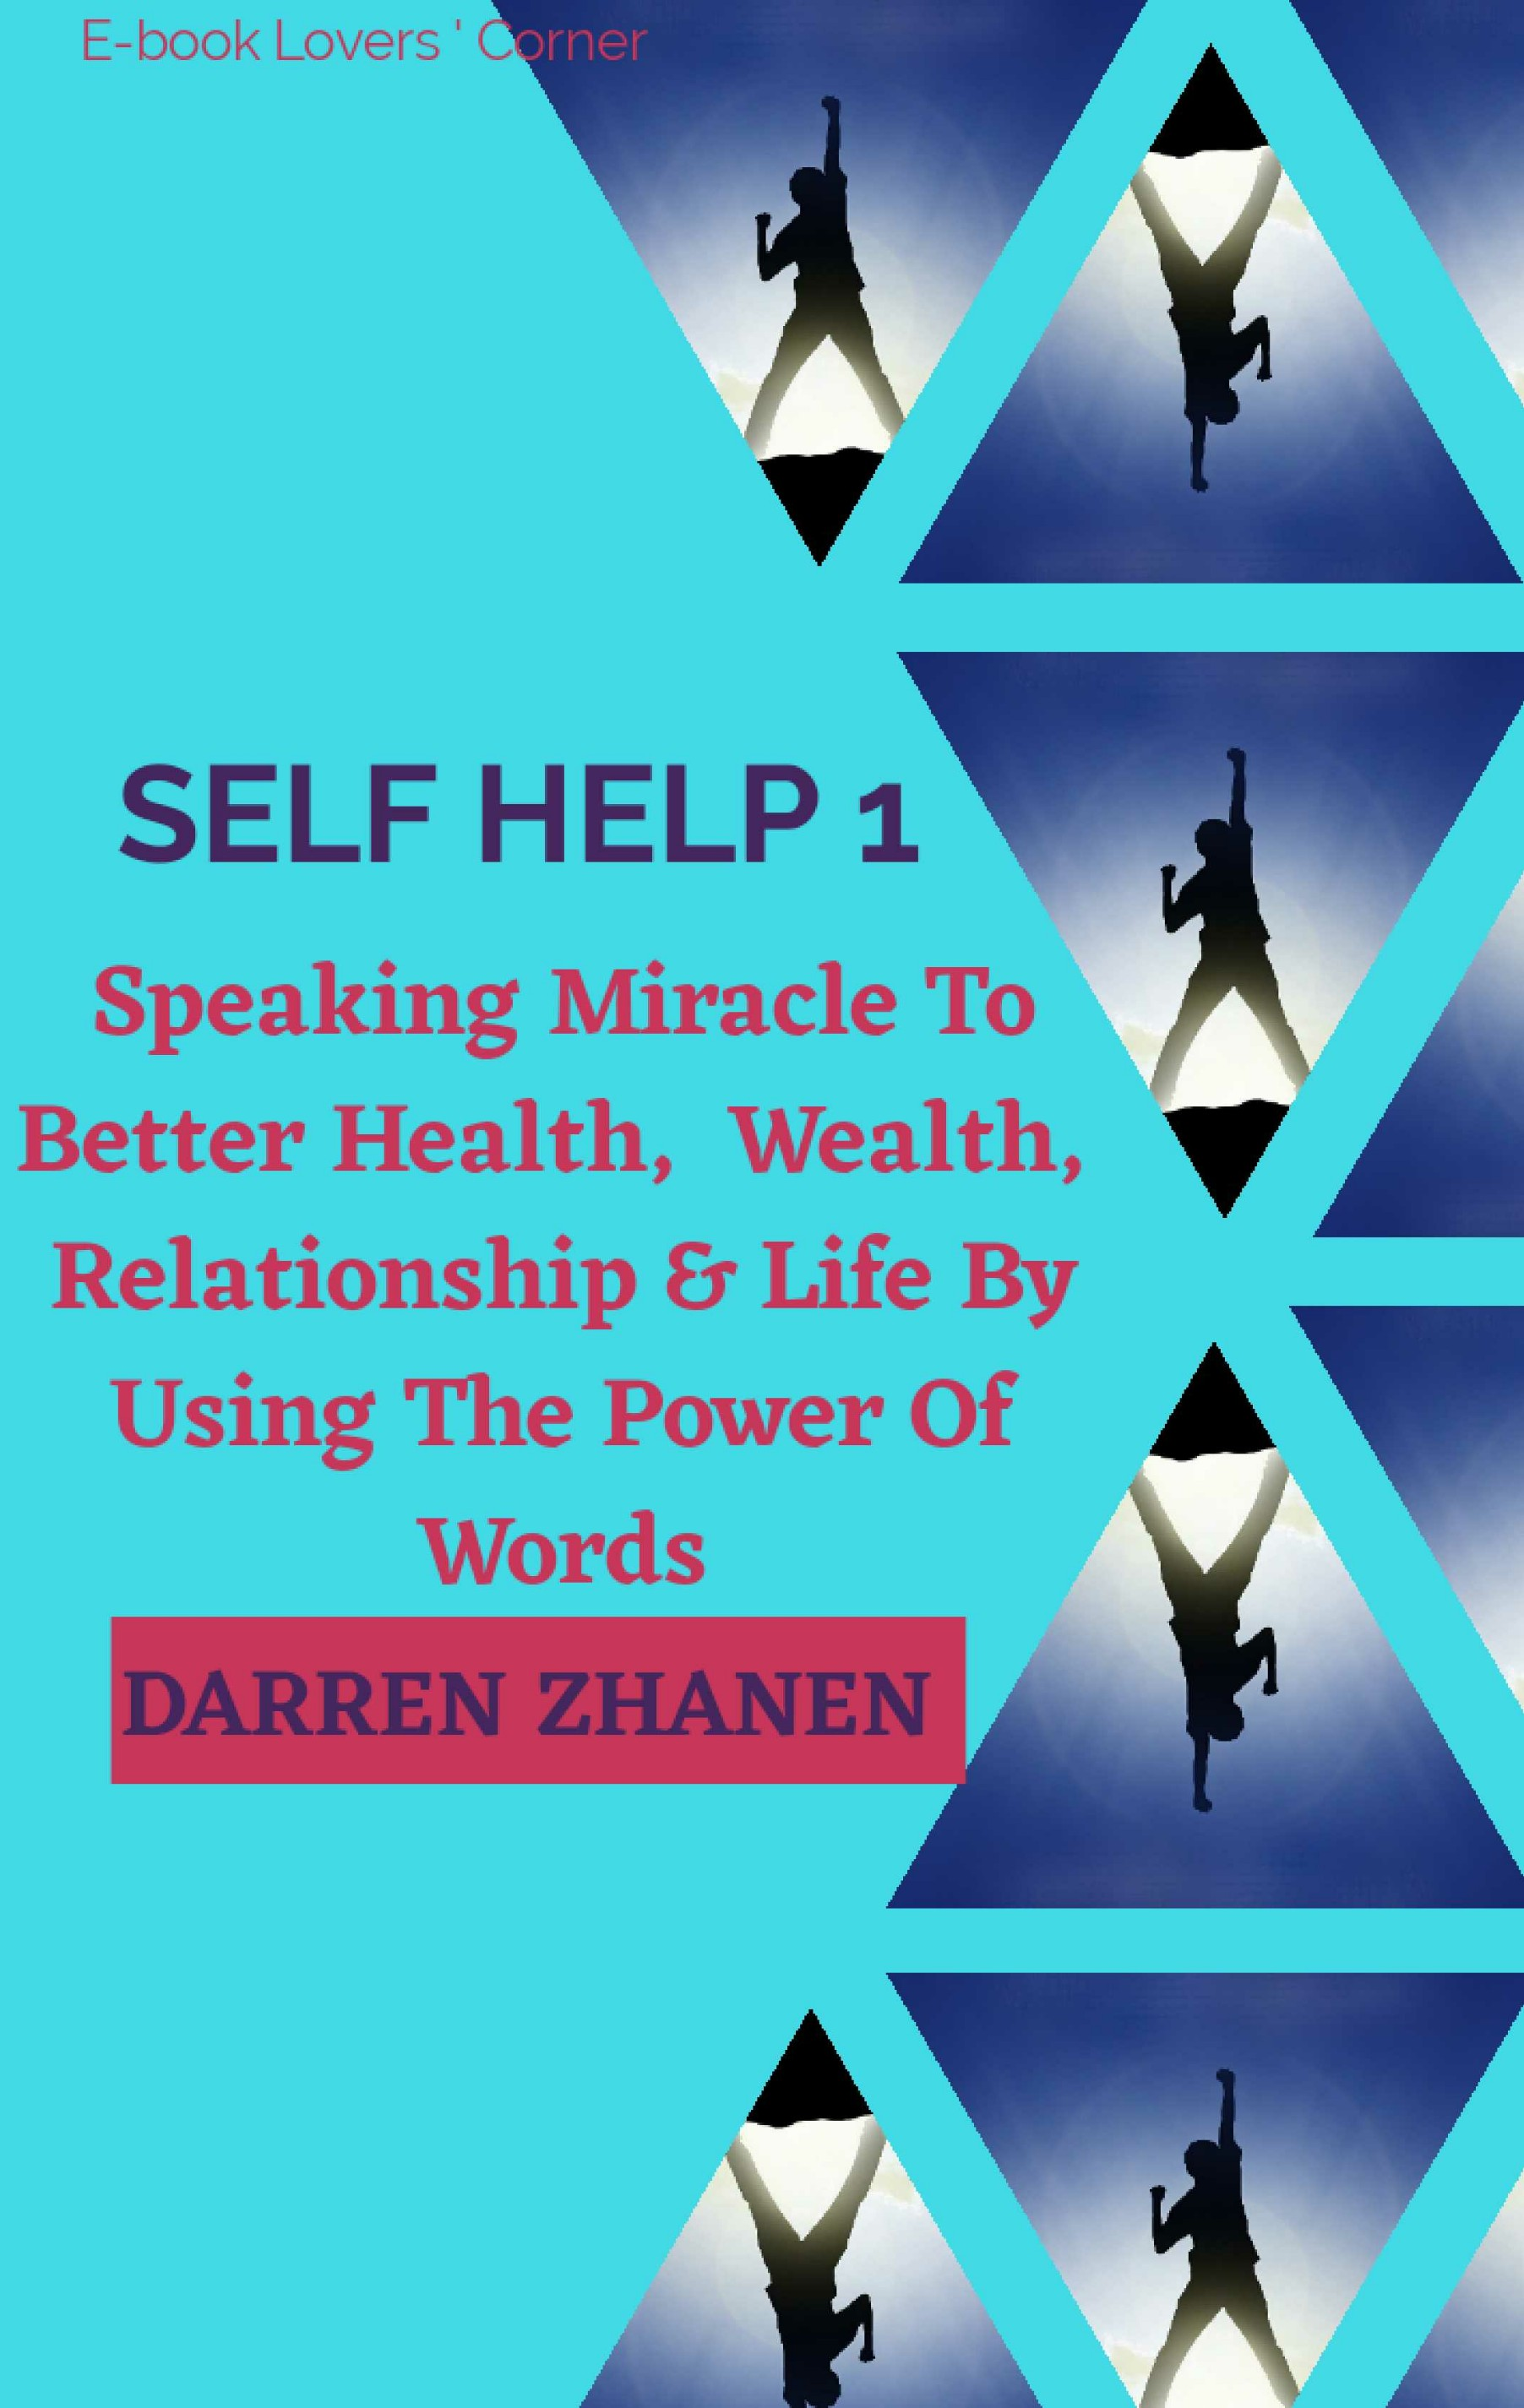 Self Help: Speaking Miracle to Better Health, Wealth, Relationship & Life  by Using the Power of Words, an Ebook by Darren Zhanen